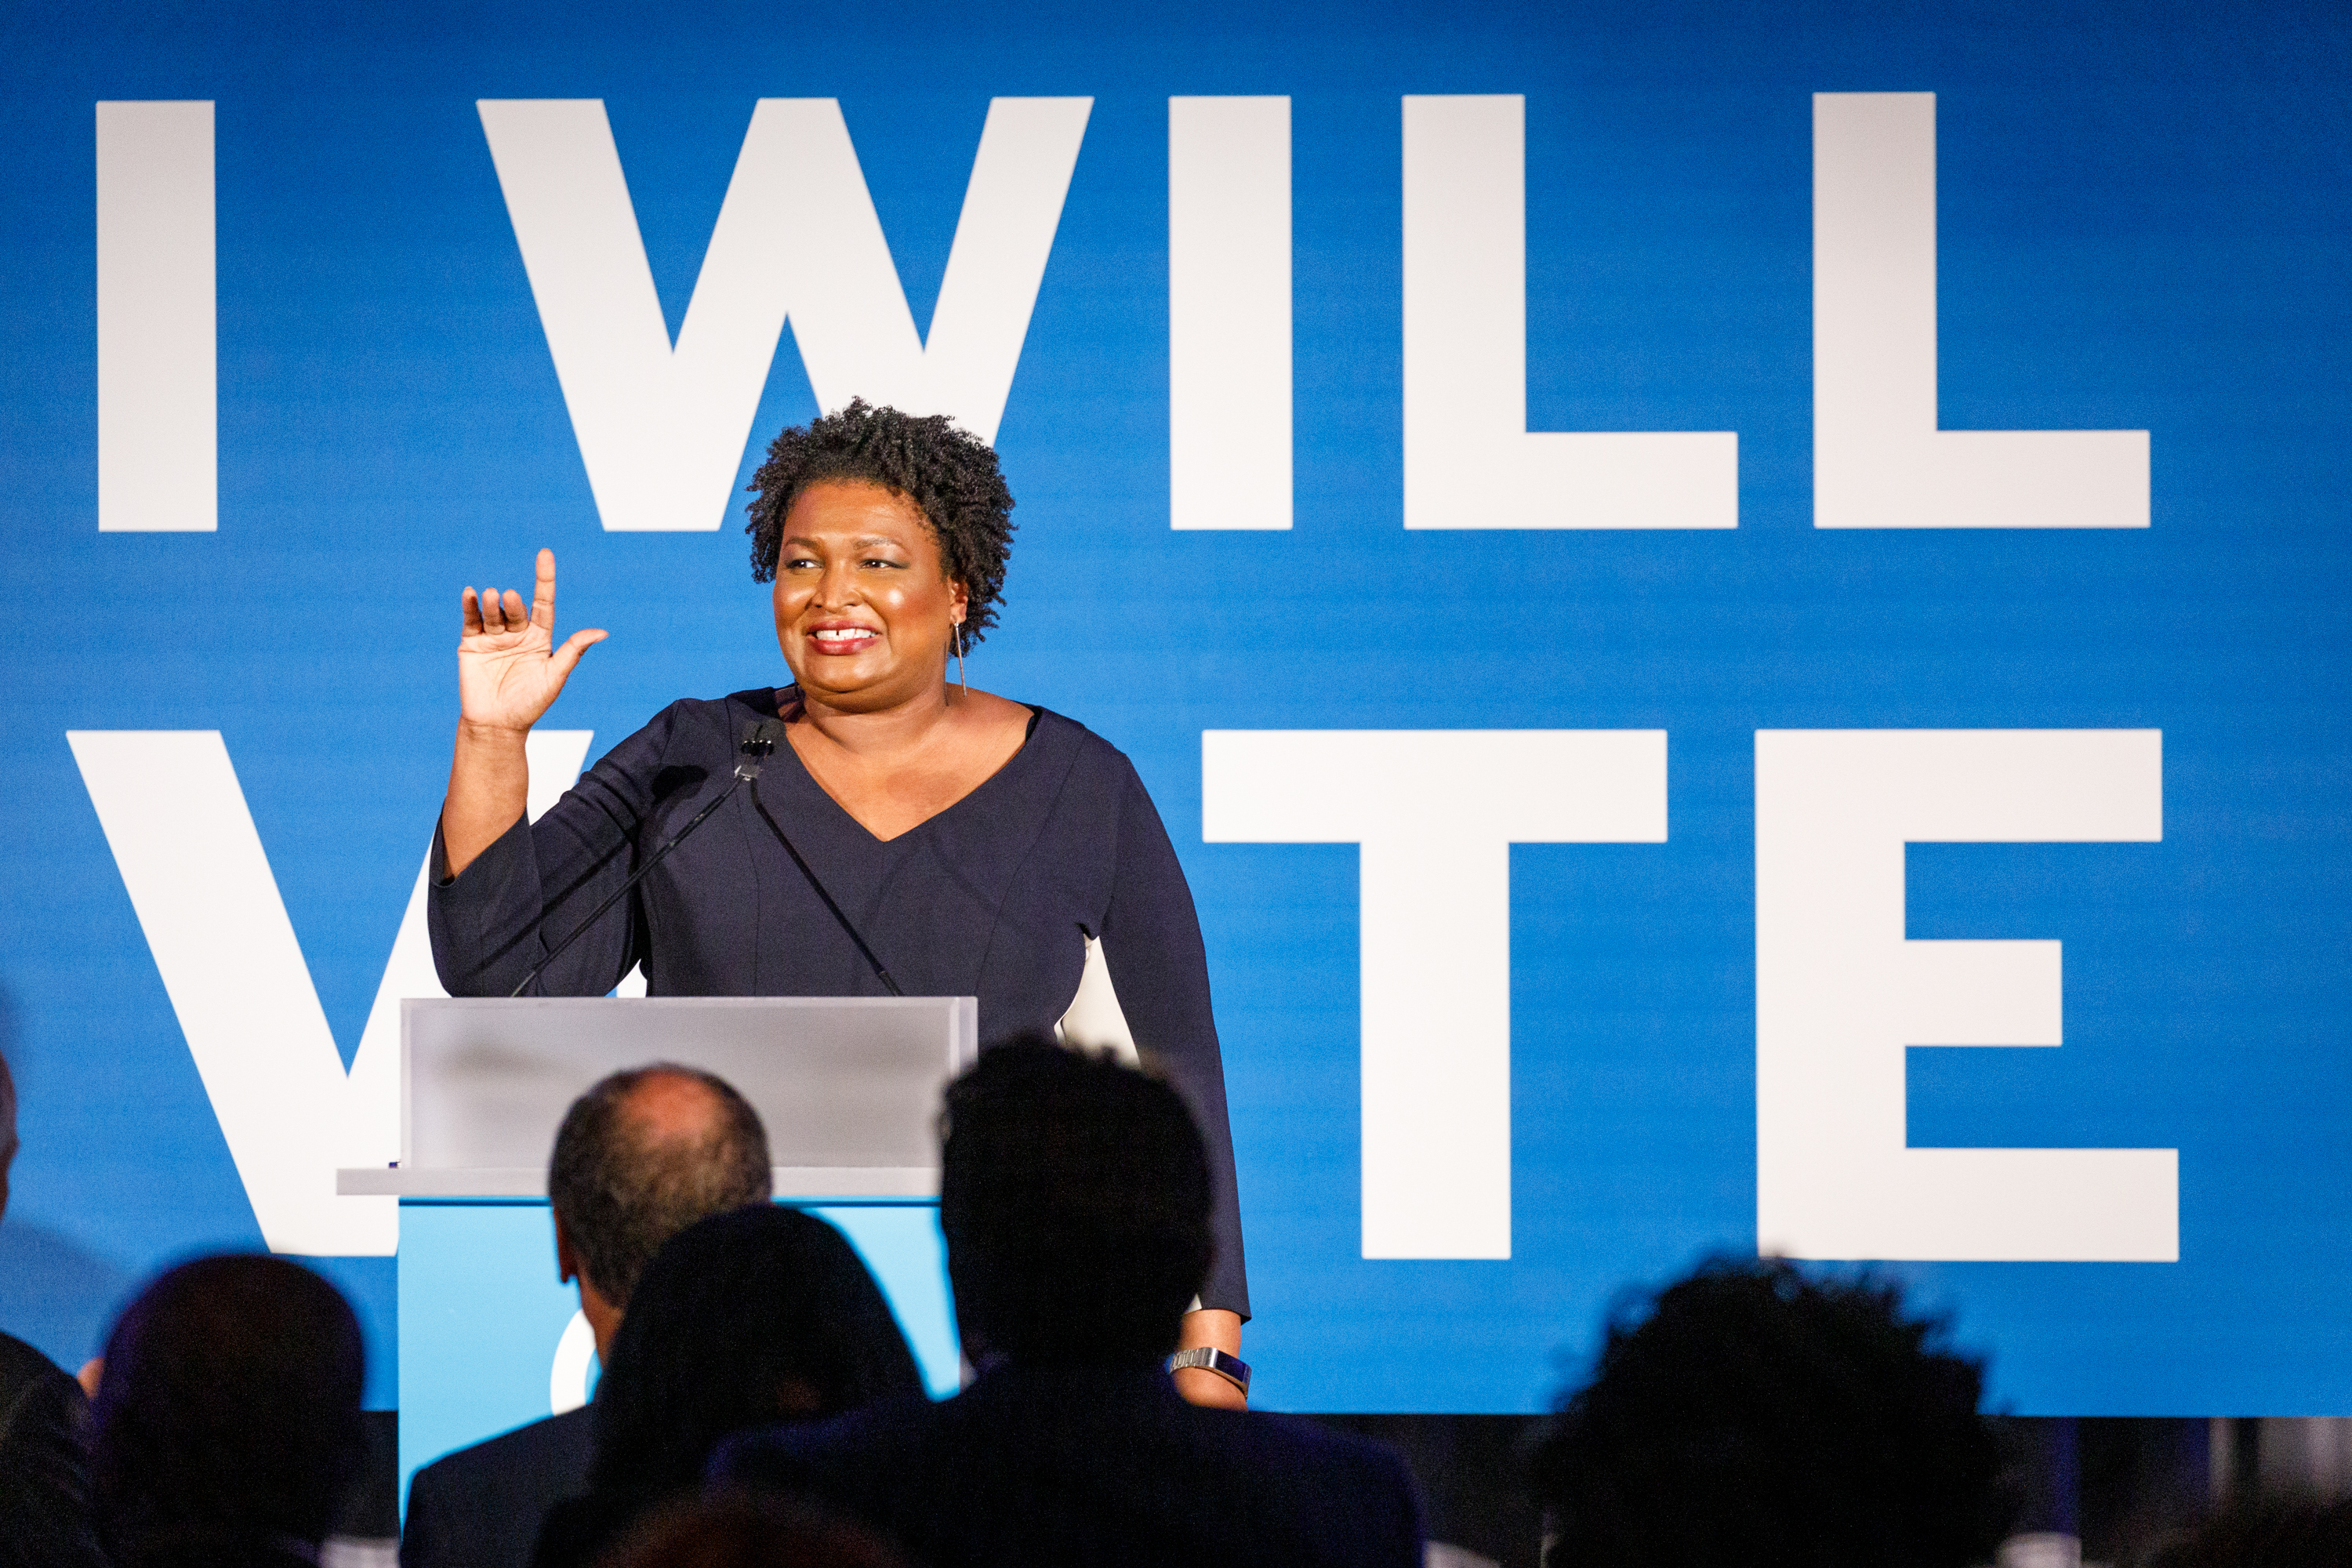 """Stacey Abrams onstage in front of a backdrop that reads, """"I will vote."""""""